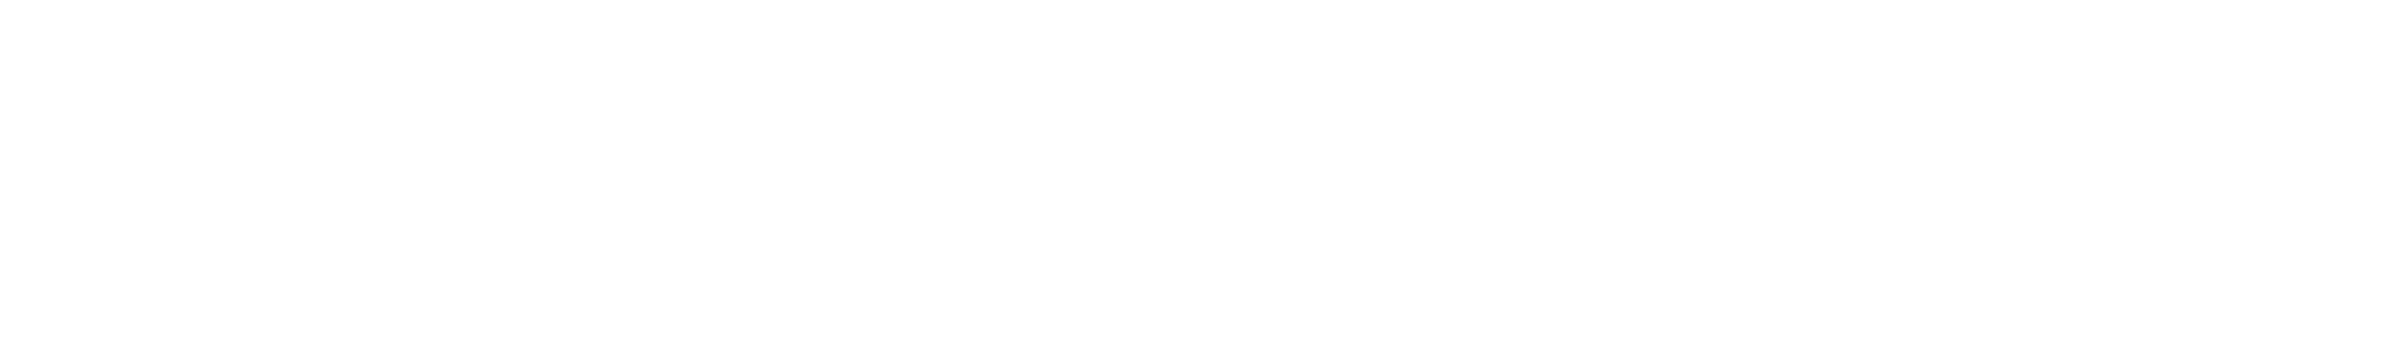 logo_white_wide.png